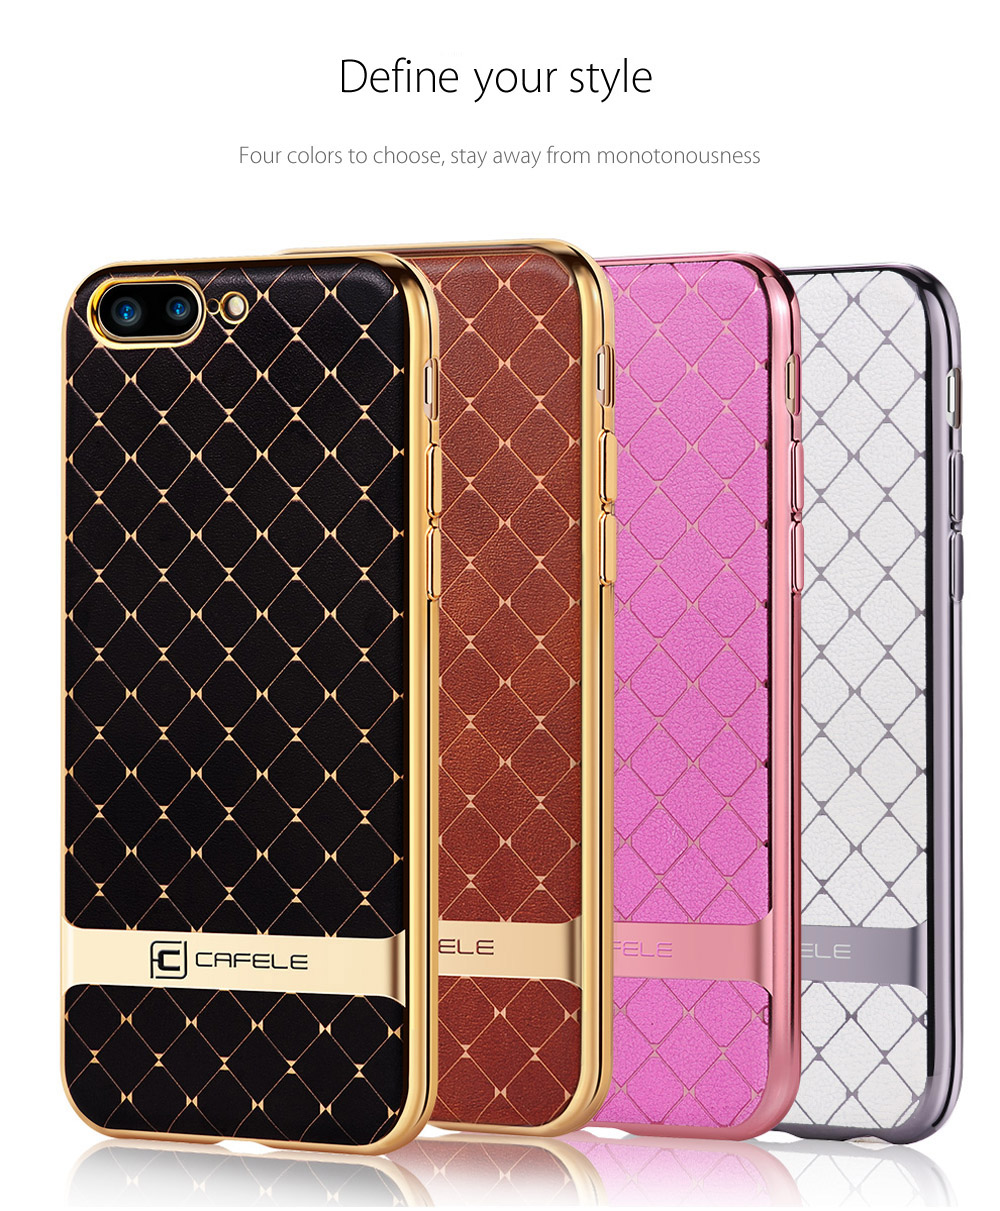 CAFELE Business Style Hourglass Pattern Back Cover for iPhone 7 4.7 inch